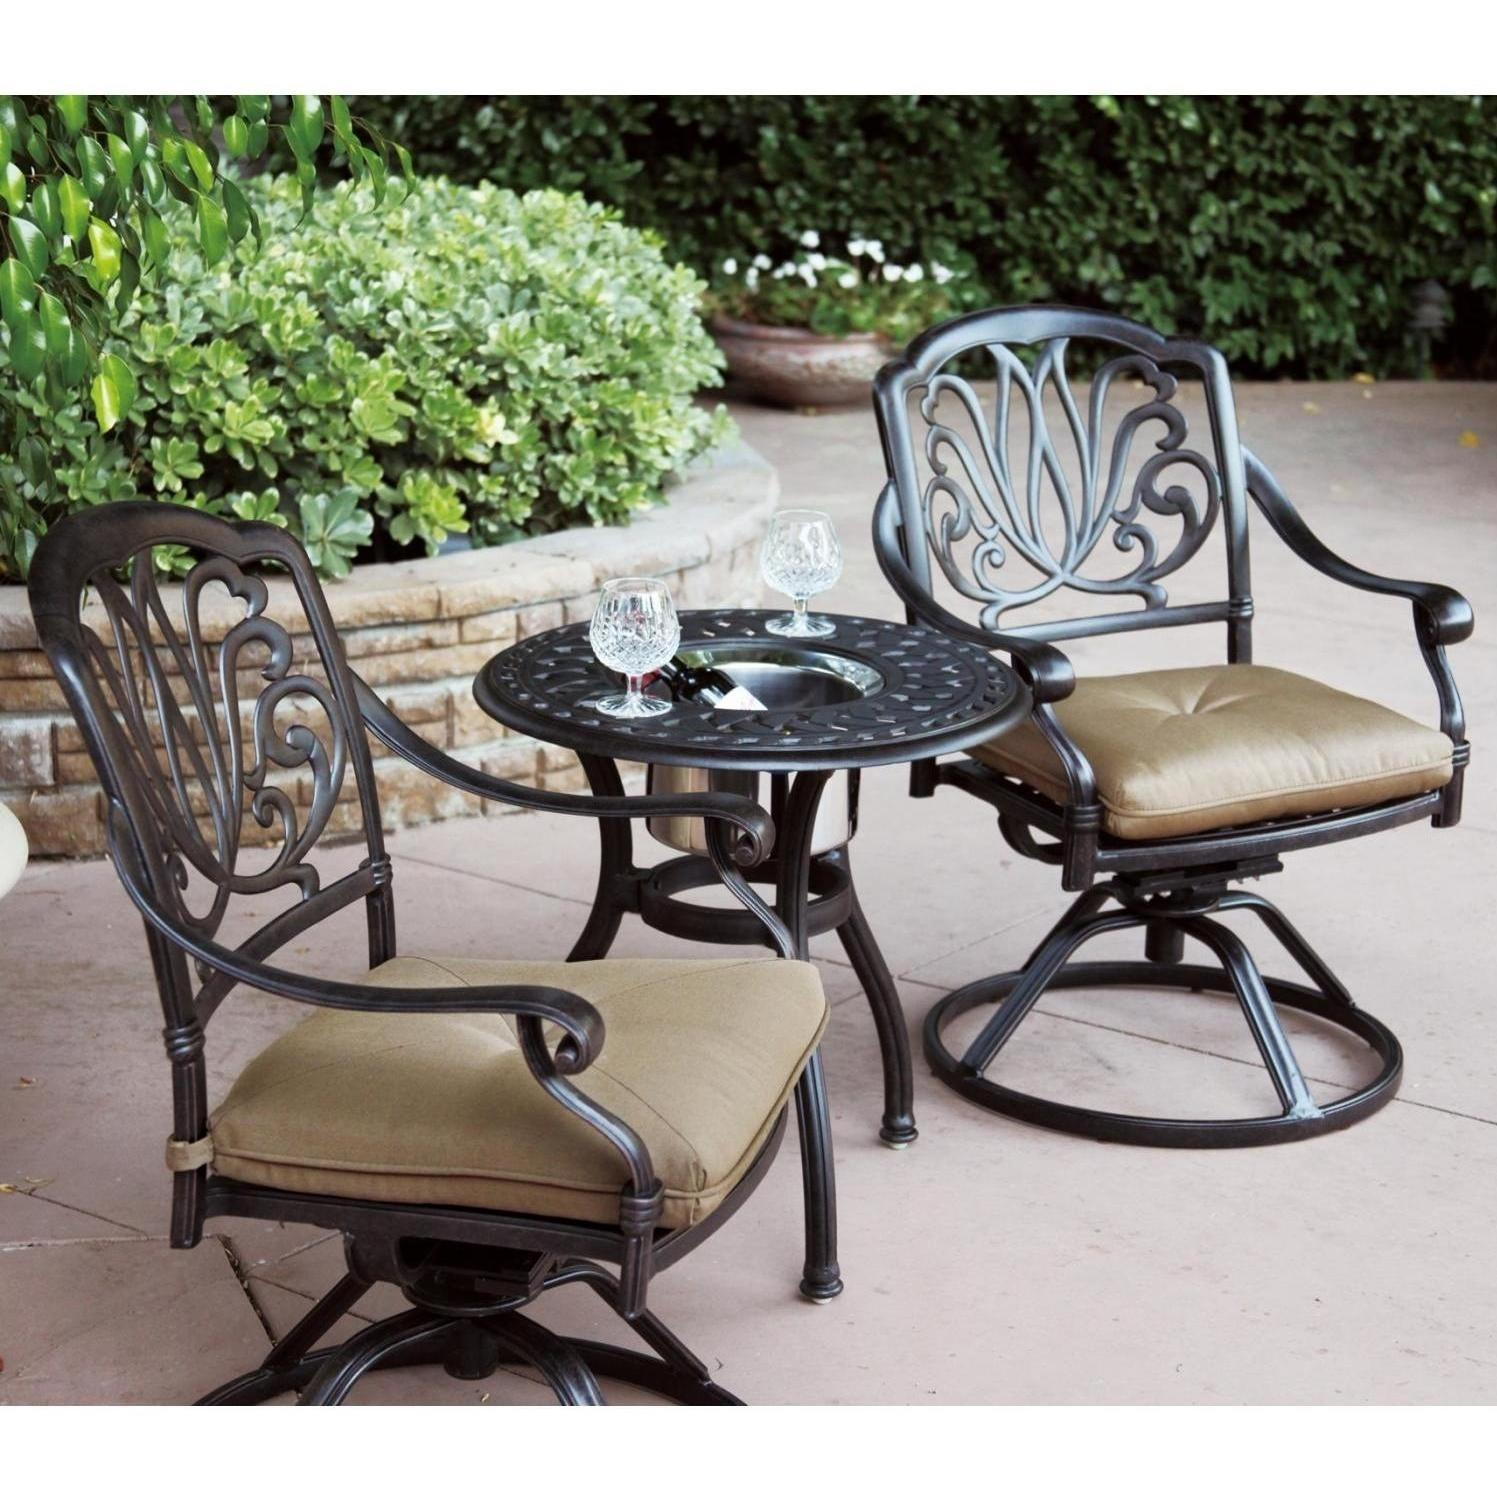 bistro set with swivel chairs heavy duty shower chair patio furniture cast aluminum rocker 3pc